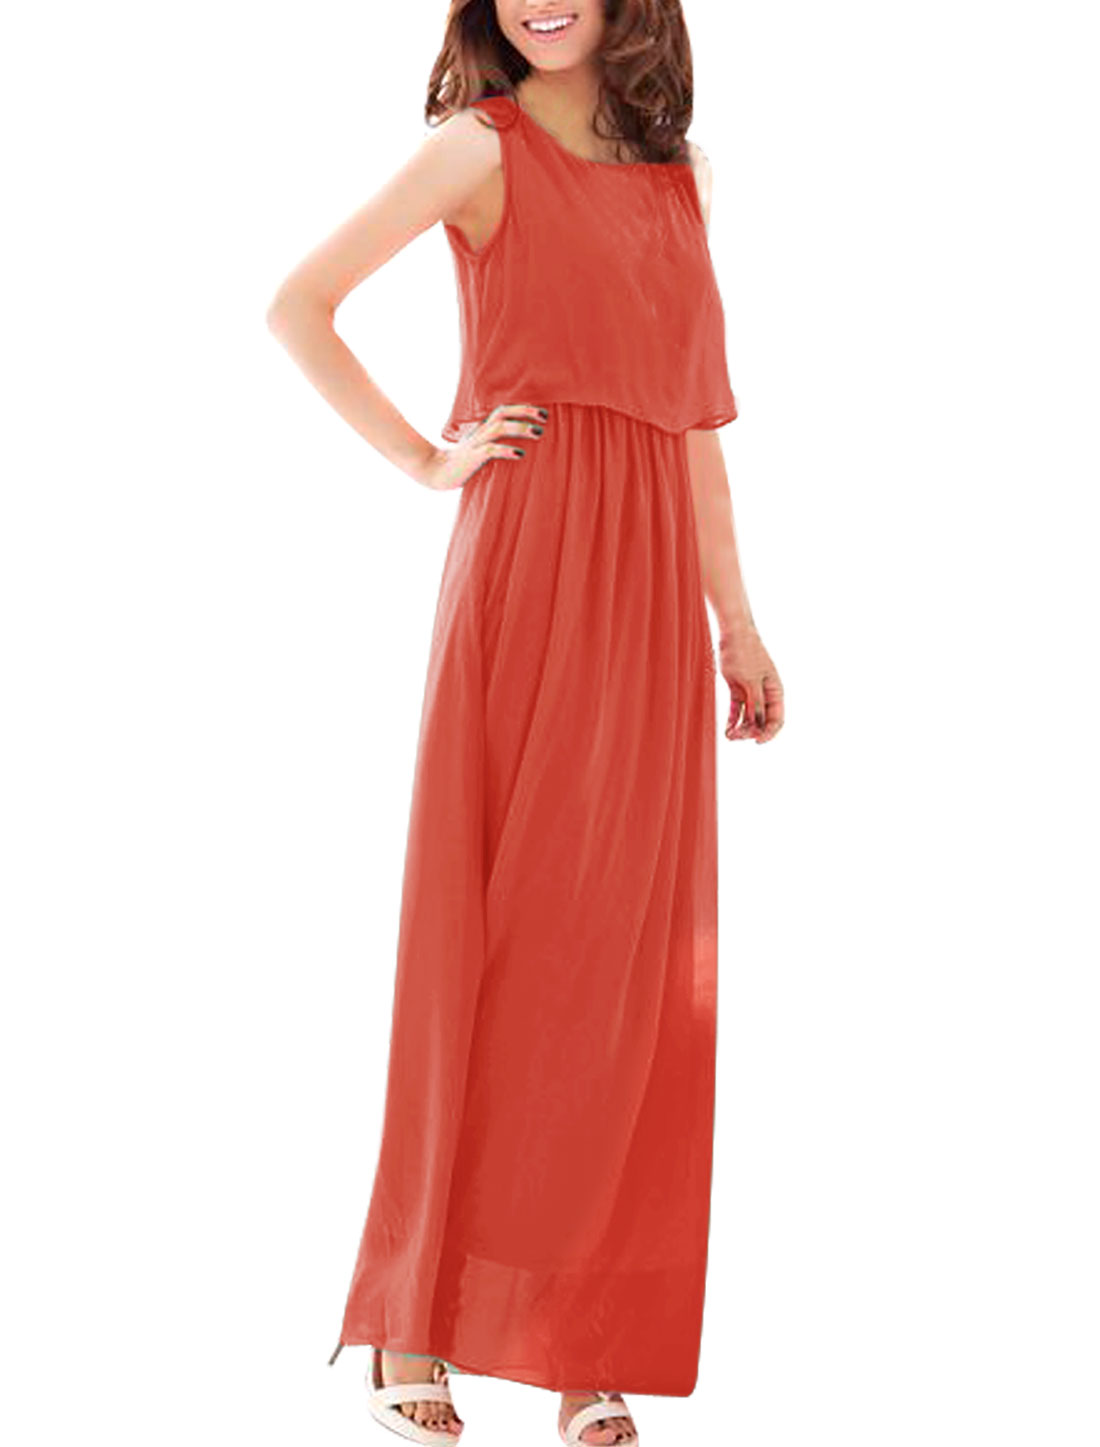 Ladies New Style Orange Red Elastic Waist Design Full Length Dress L